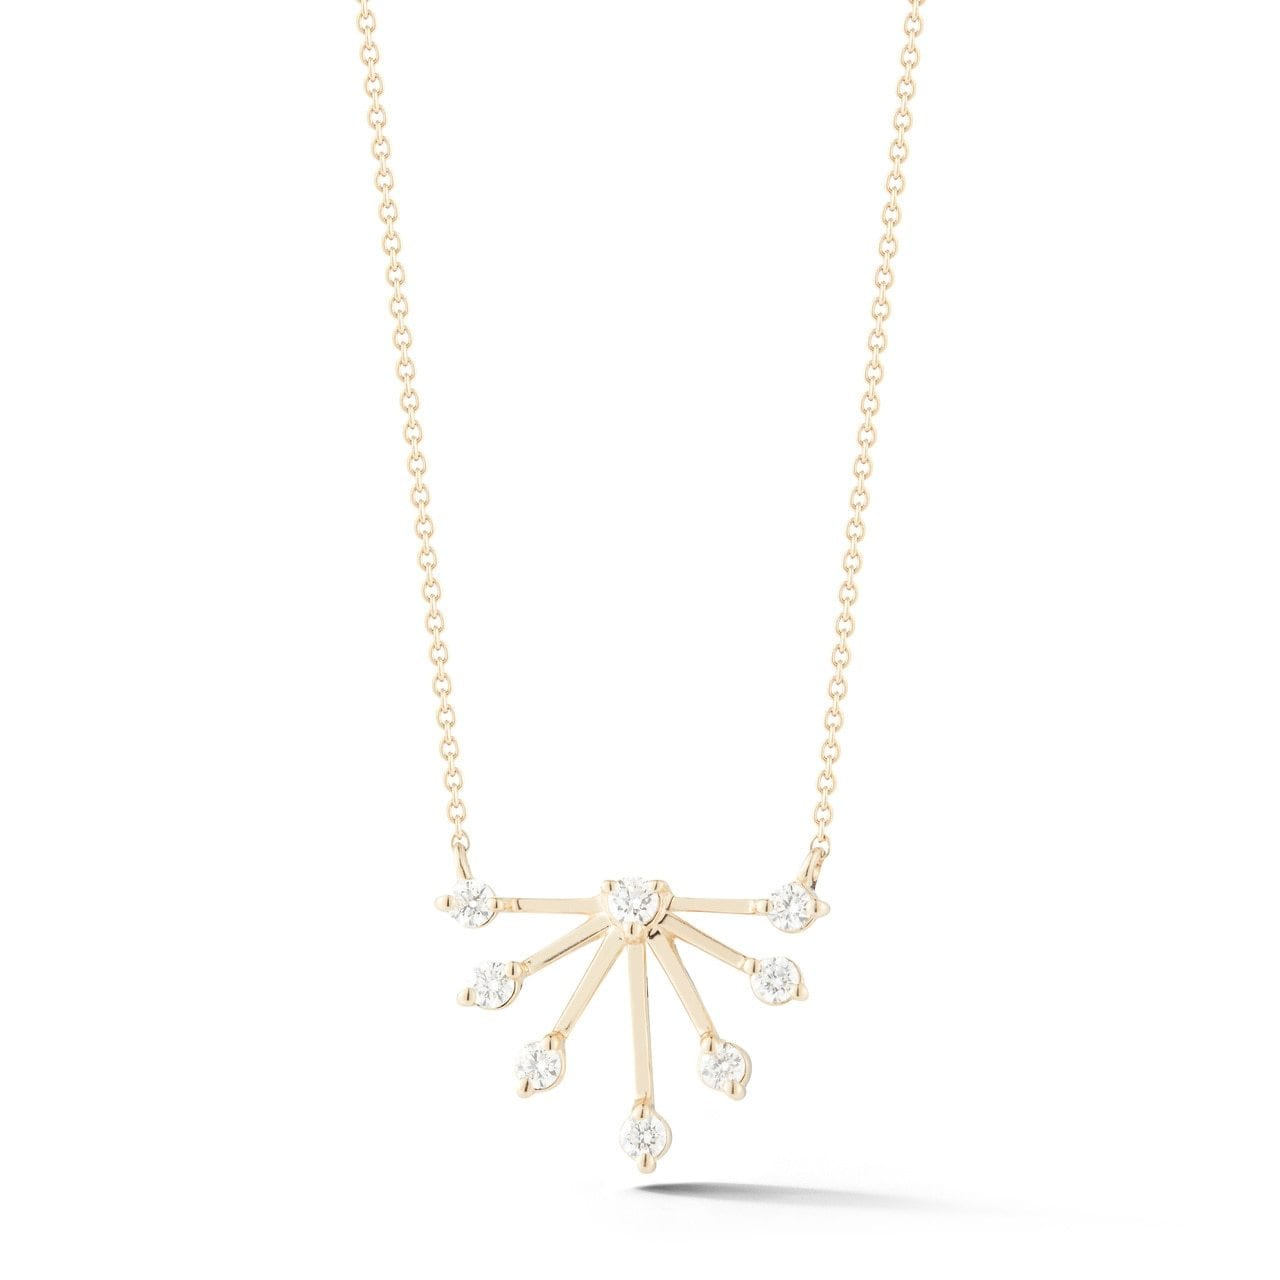 Dana Rebecca | Sophia Ryan Sunburst Necklace